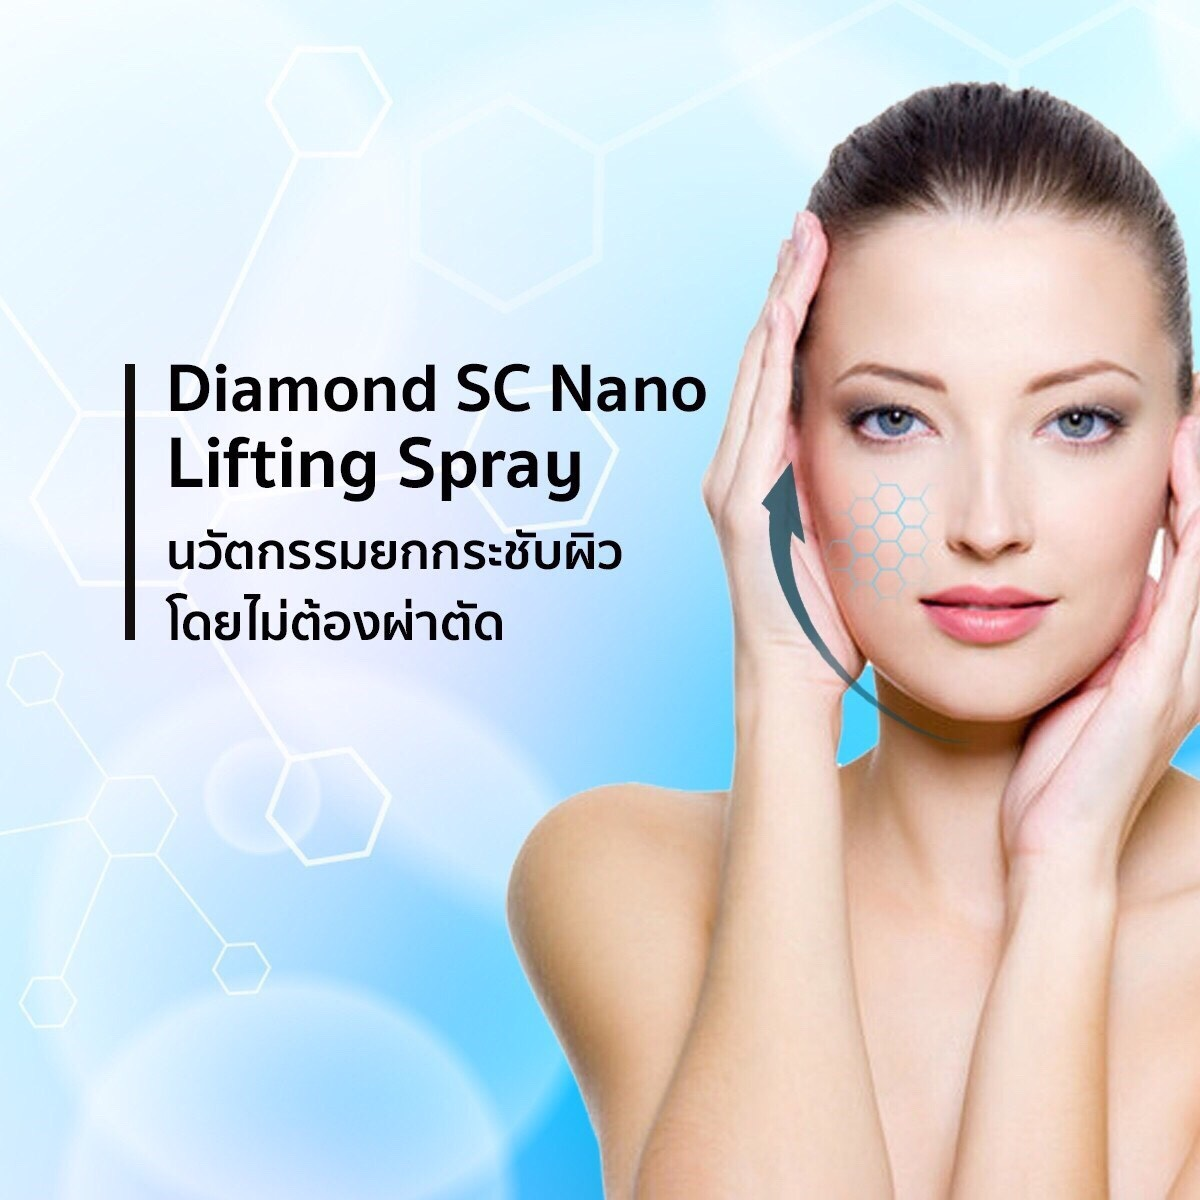 Divas Diamond SC Nano Lifting Spray